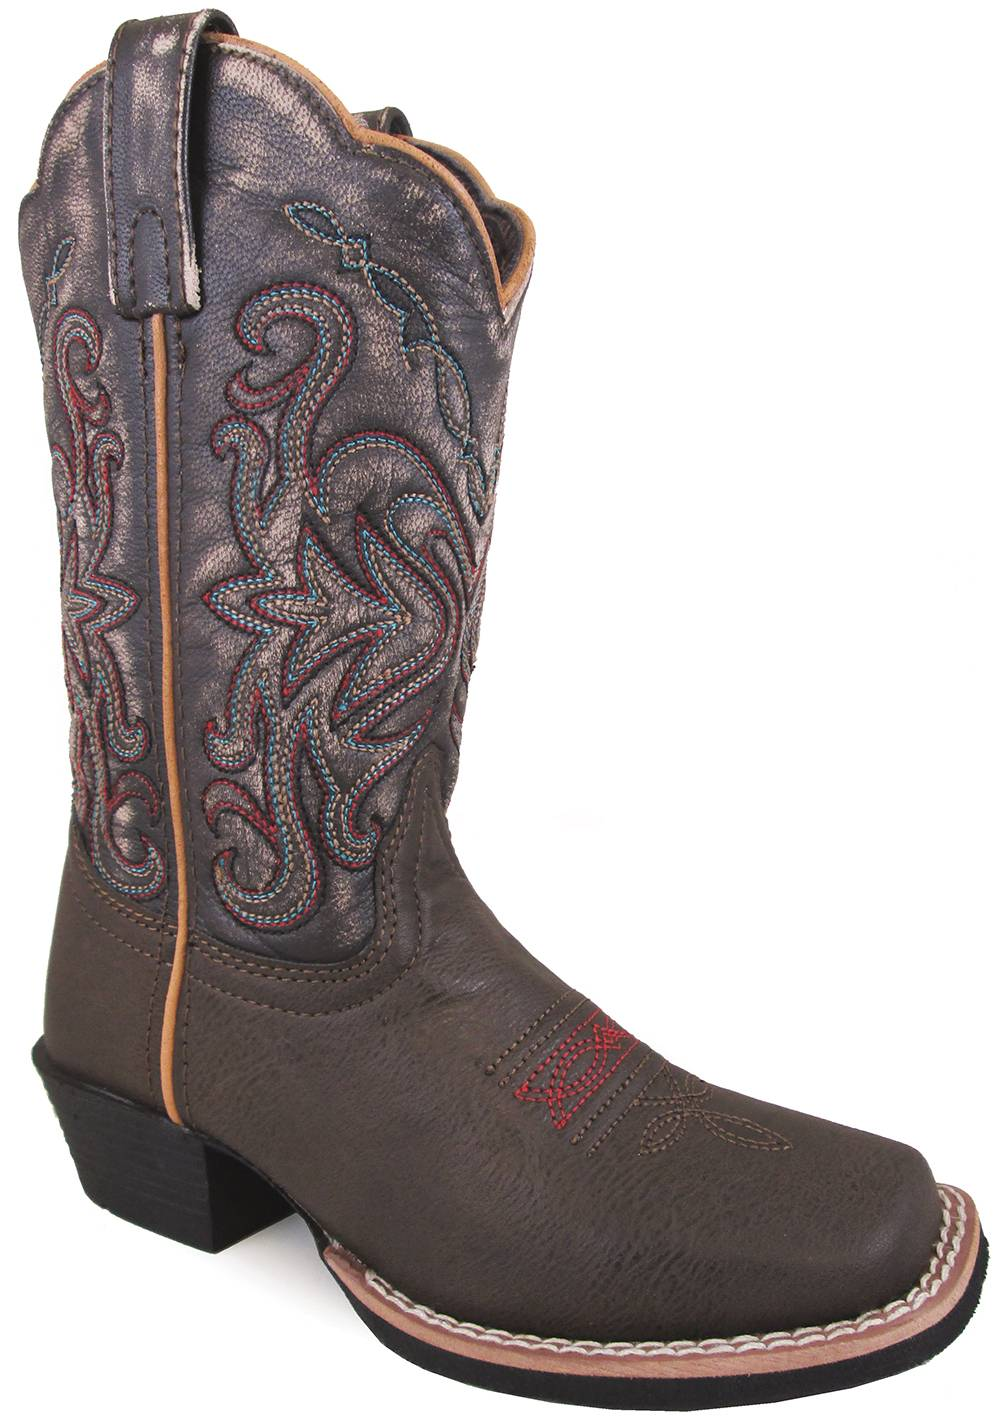 Smoky Mountain Fusion 2 Square Toe Boots - Childrens - Brown/Black Vintage